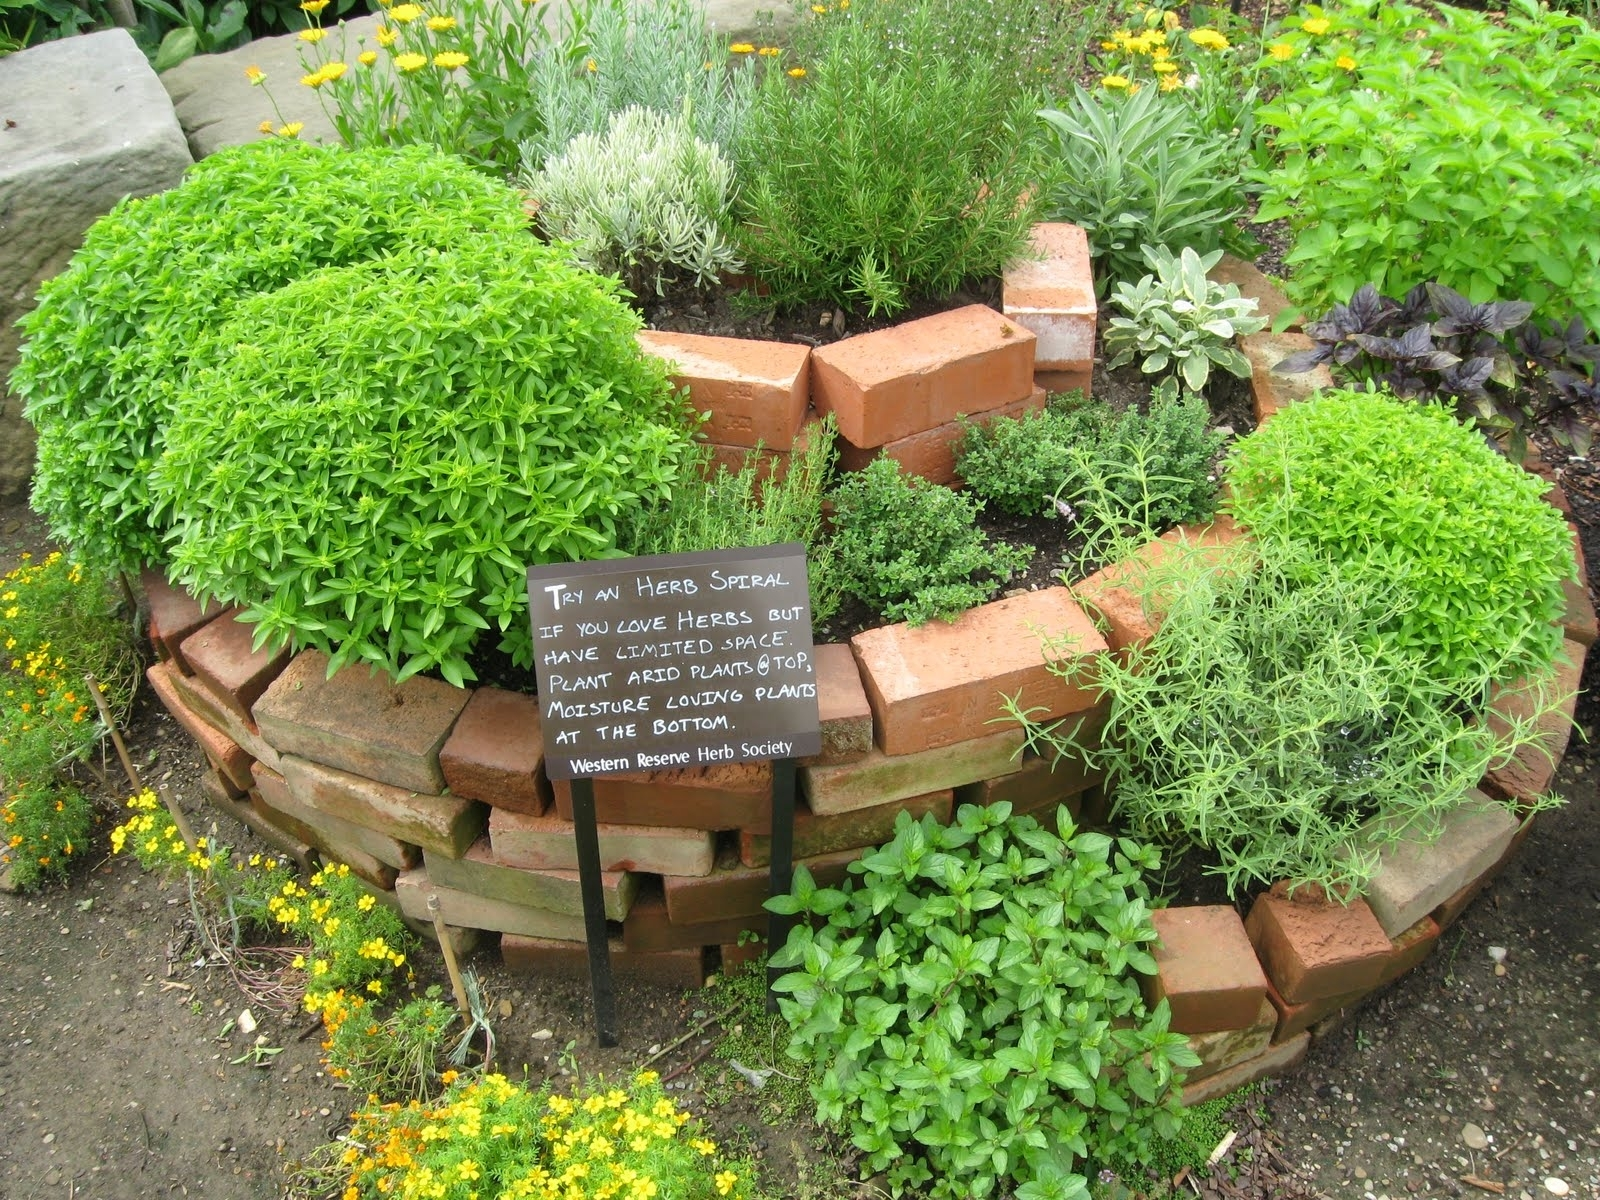 Majestic Herbal Gardens Simple Ideas 78 Best Images About Herb for Best Layout For Apartments For Rent Garden Grove Ca Design Ideas